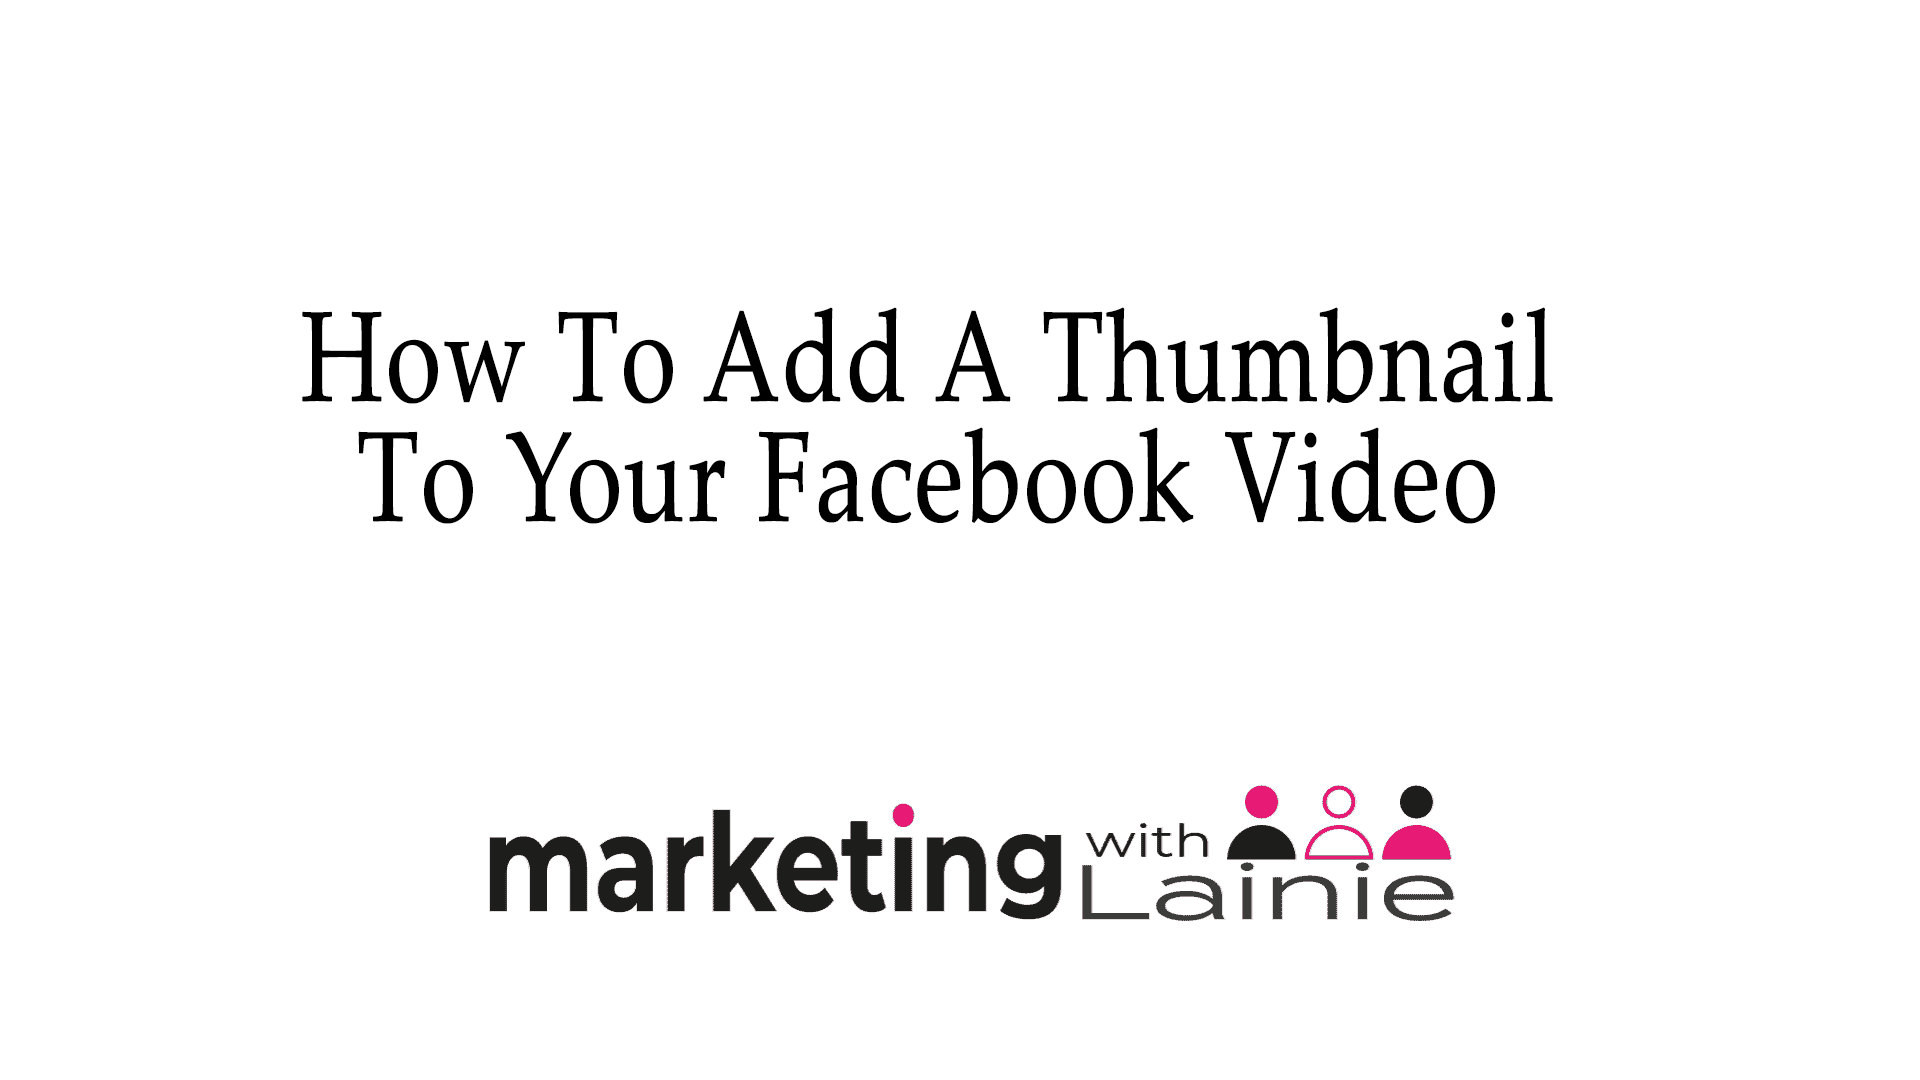 How To Add A Thumbnail To Your Facebook Video